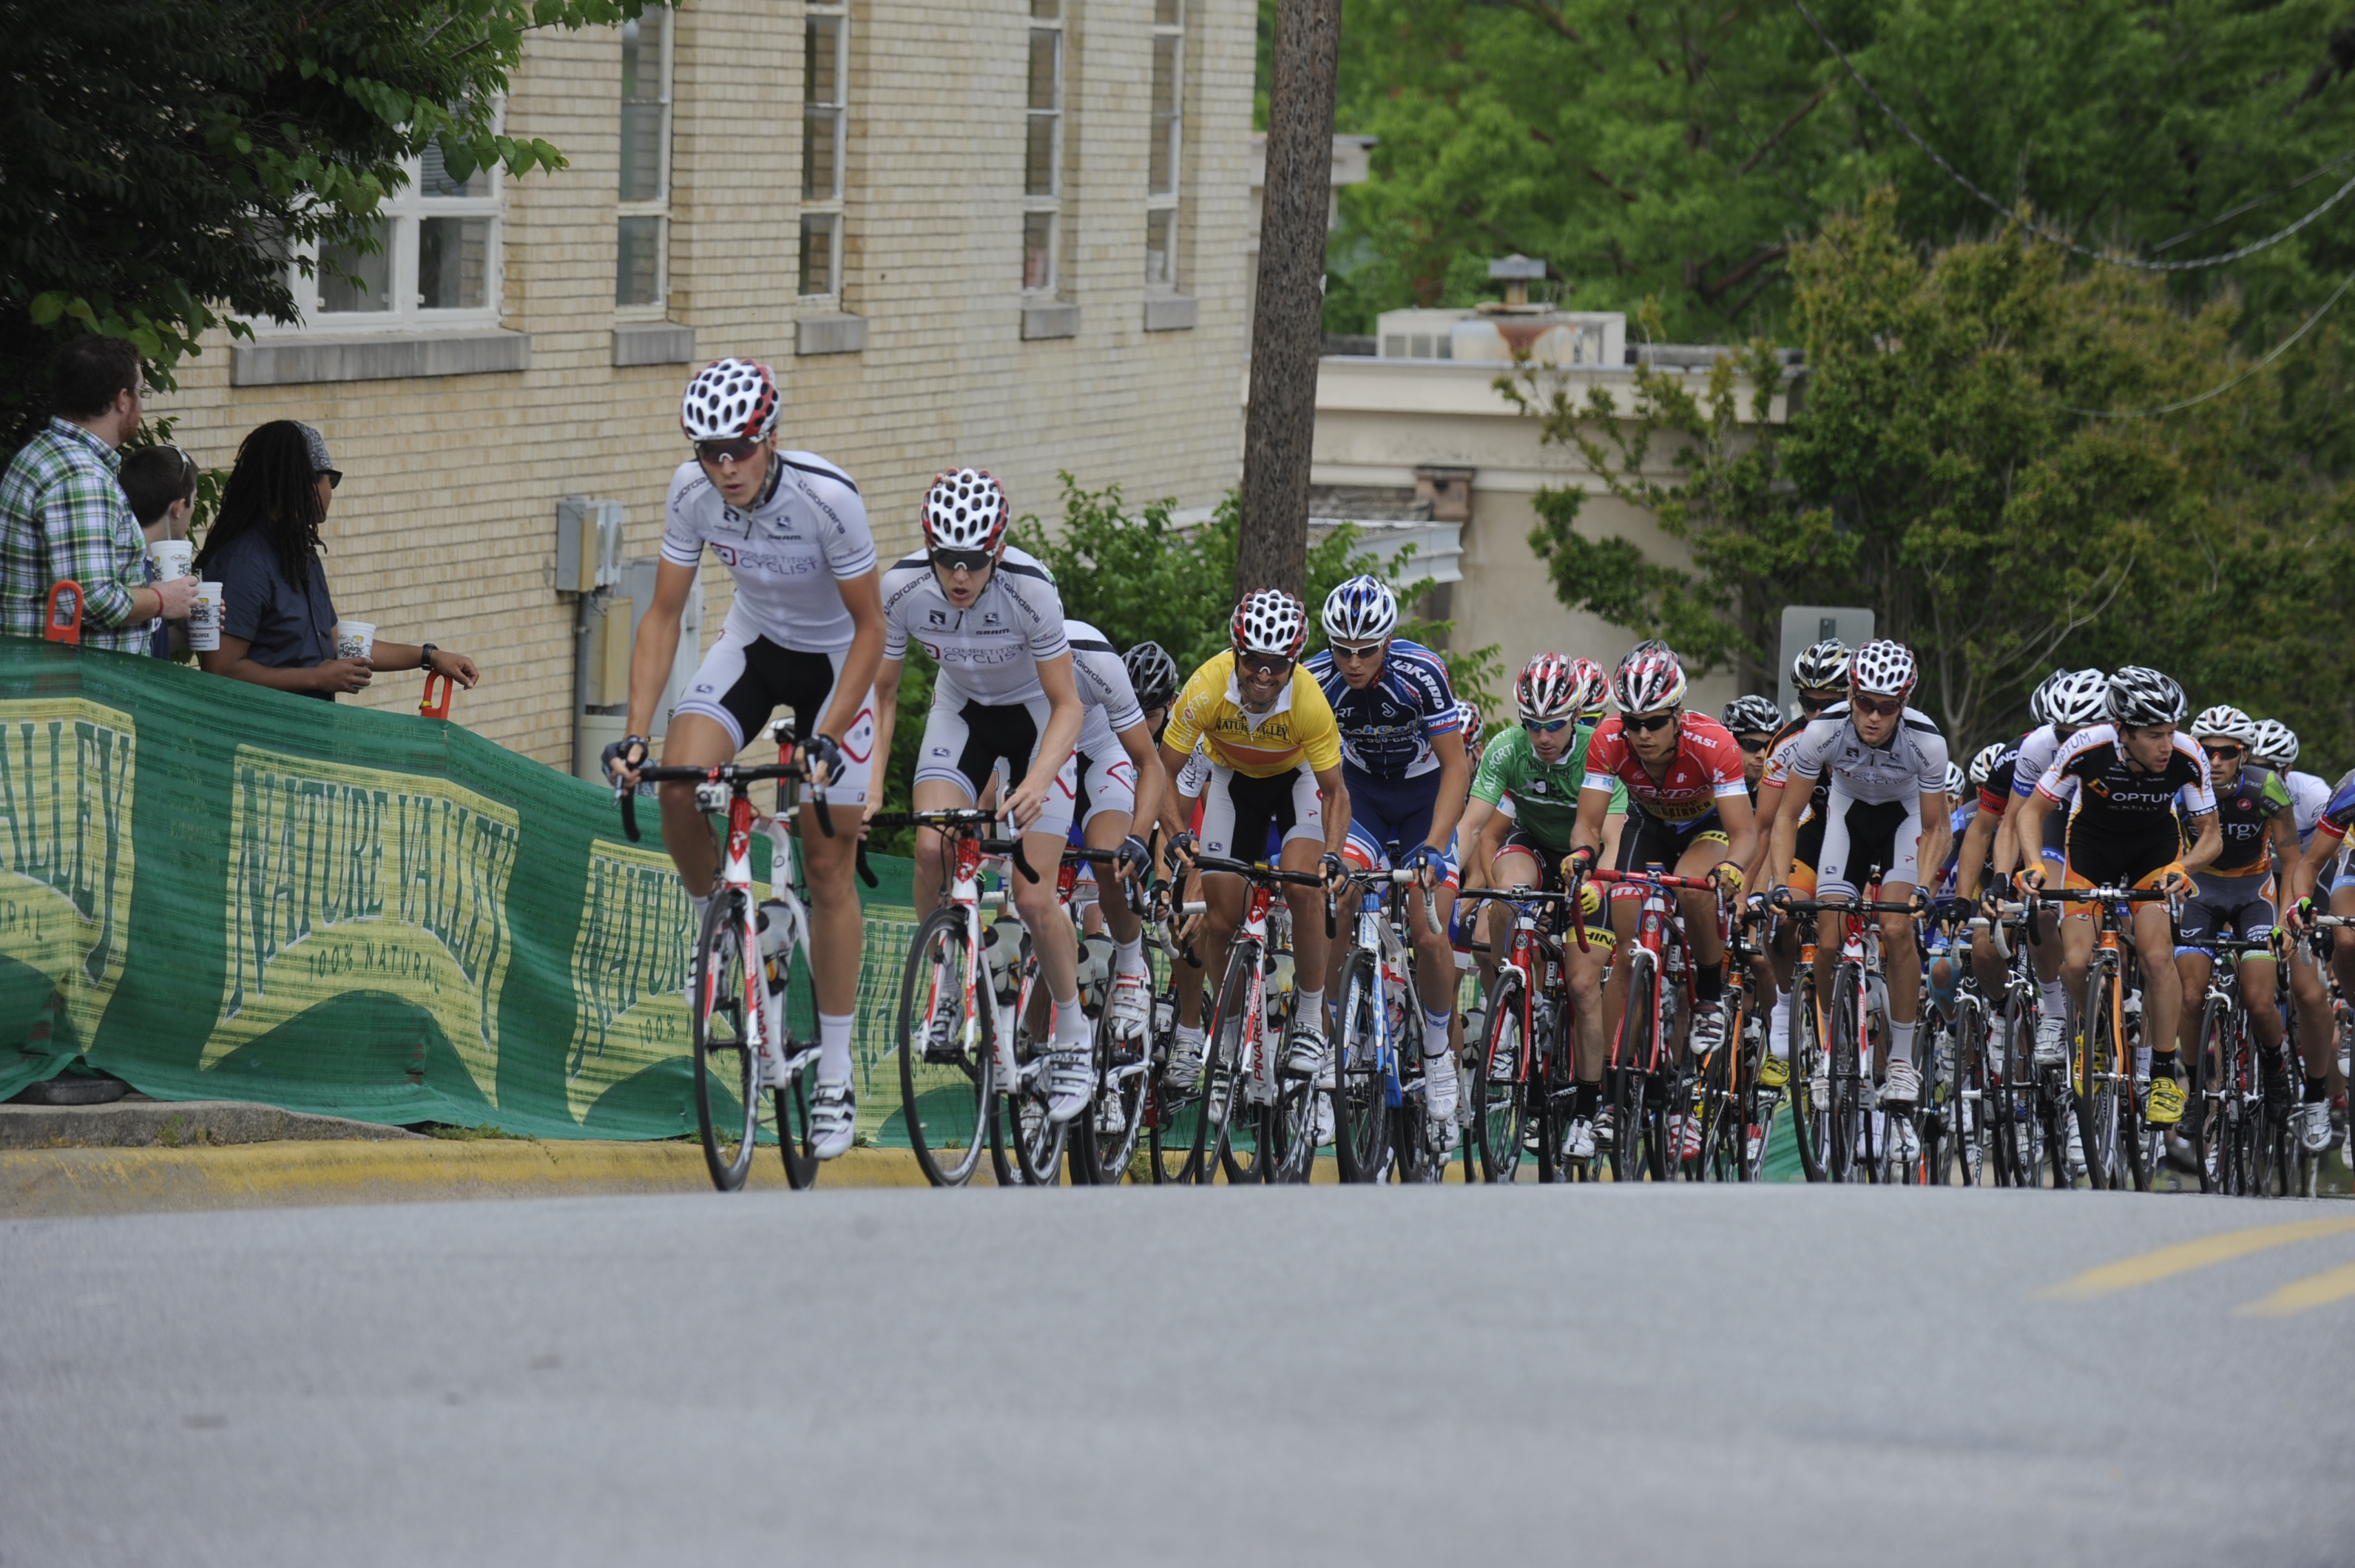 Perfect team form shown by the Competitive Cyclist Racing Team during the Joe Martin Stage Race.